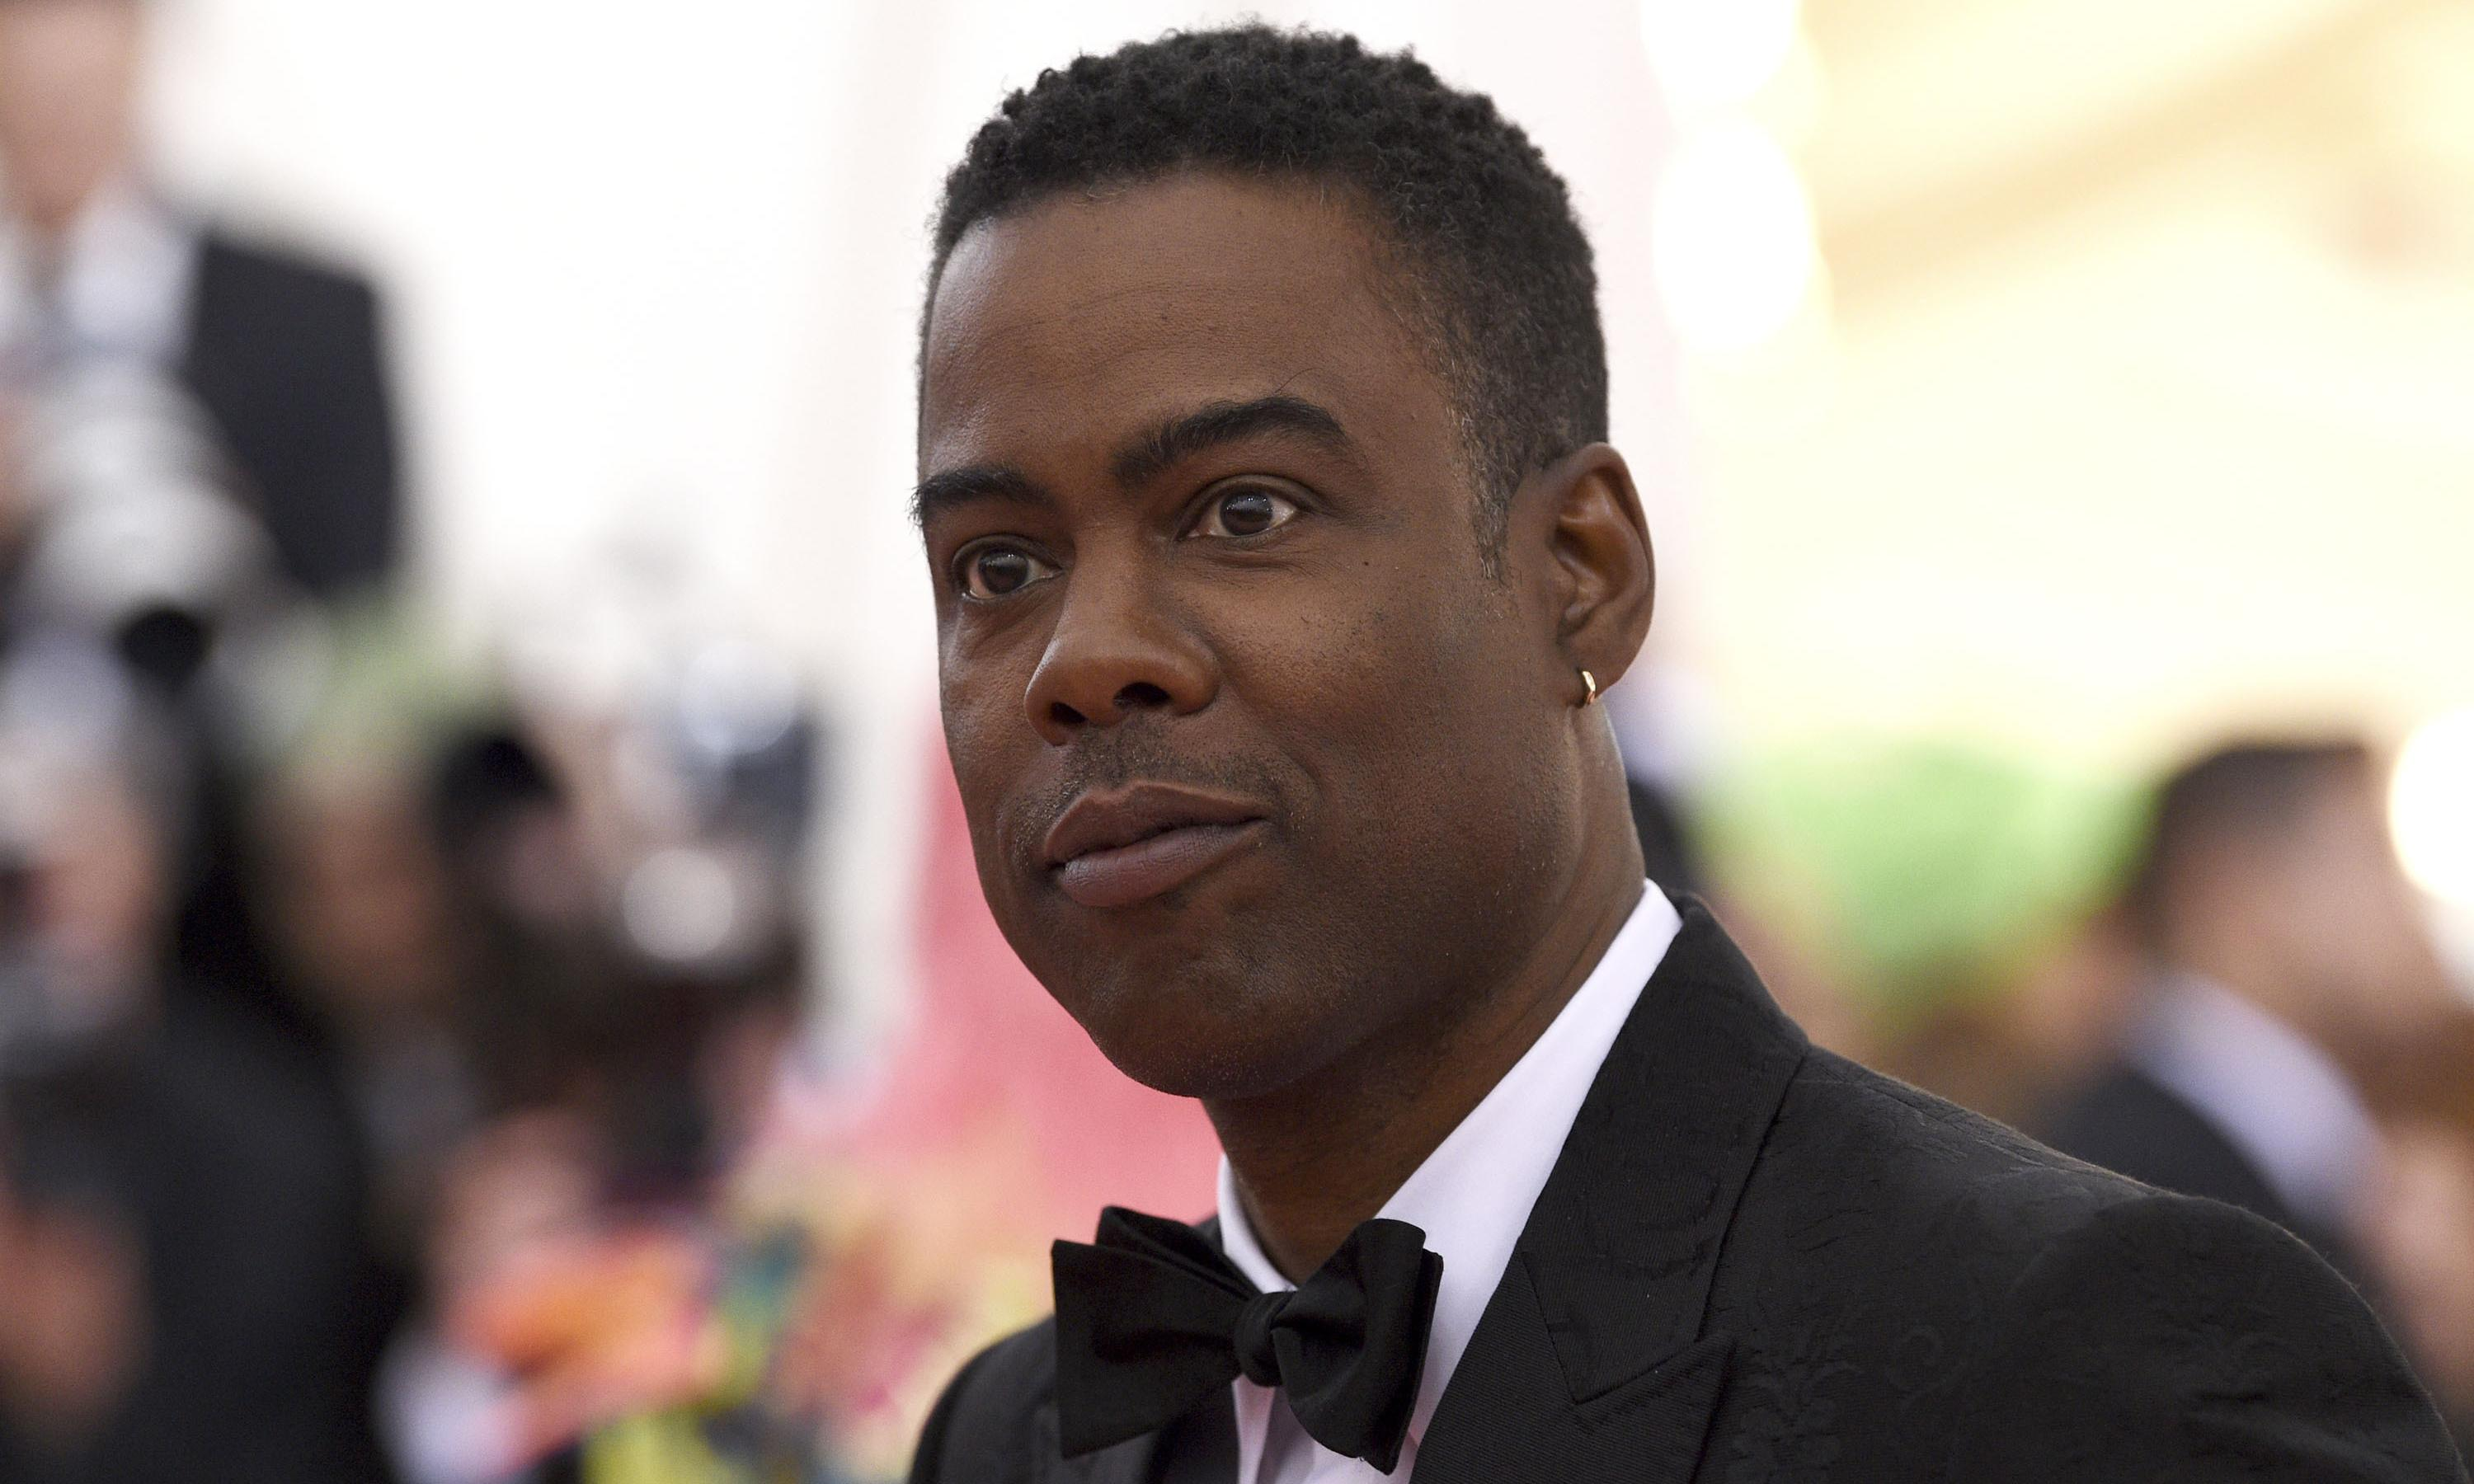 Chris Rock set to reboot Saw franchise with 'twisted' new film